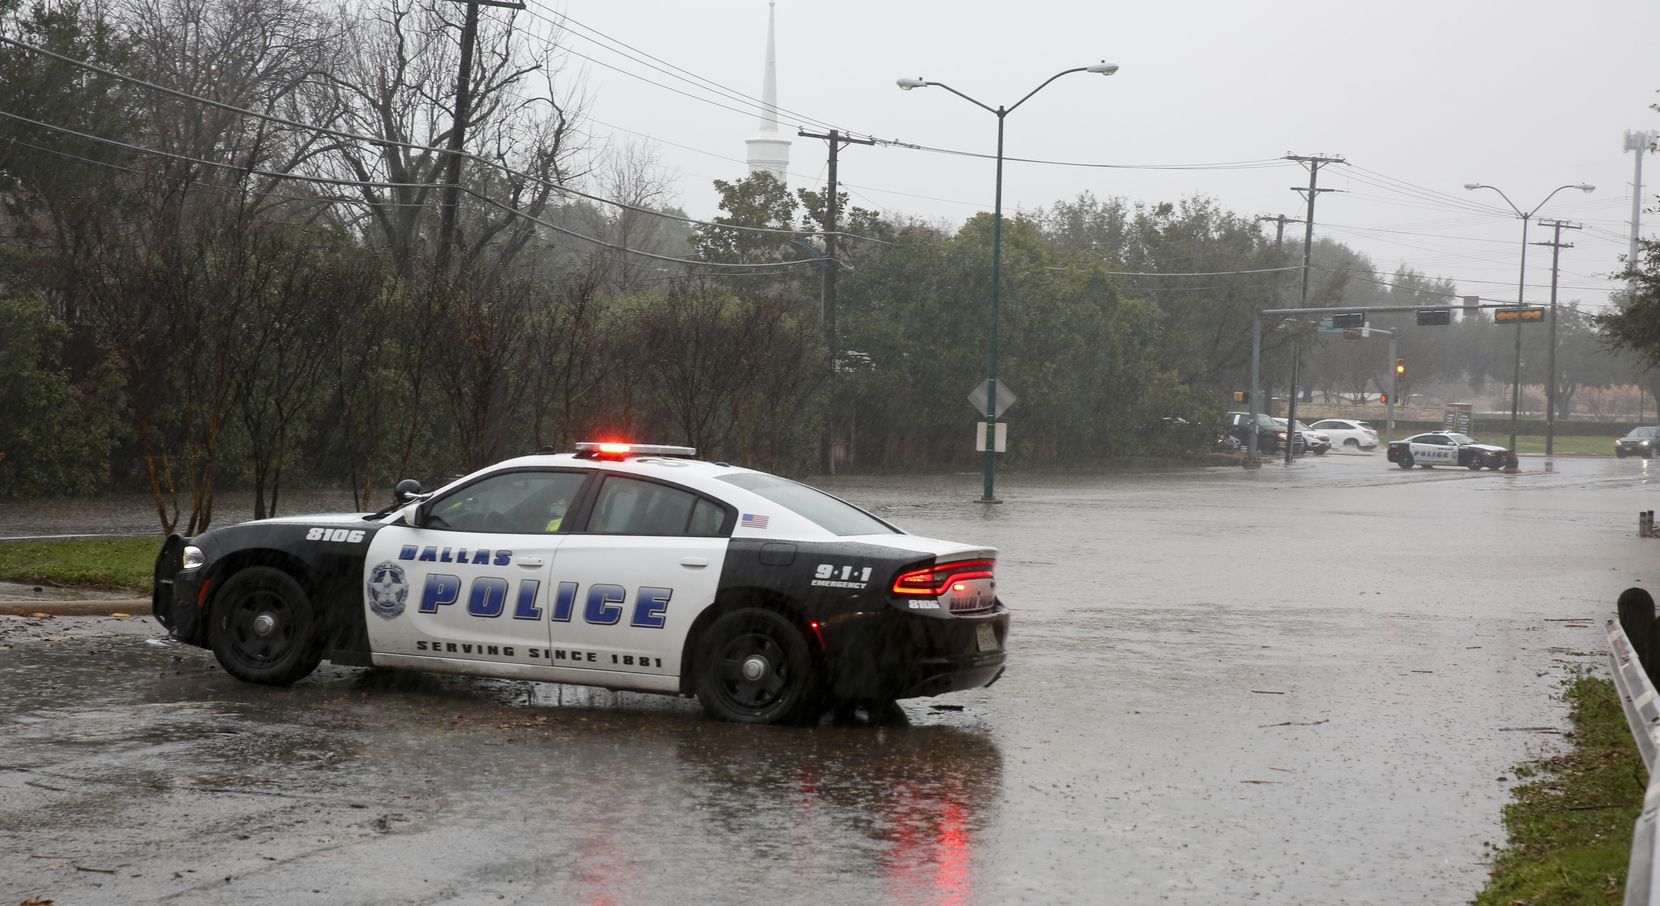 Dallas police shut down Hillcrest Road just south of Royal Lane after heavy rains caused street flooding in Dallas on Thursday, January 16, 2020.